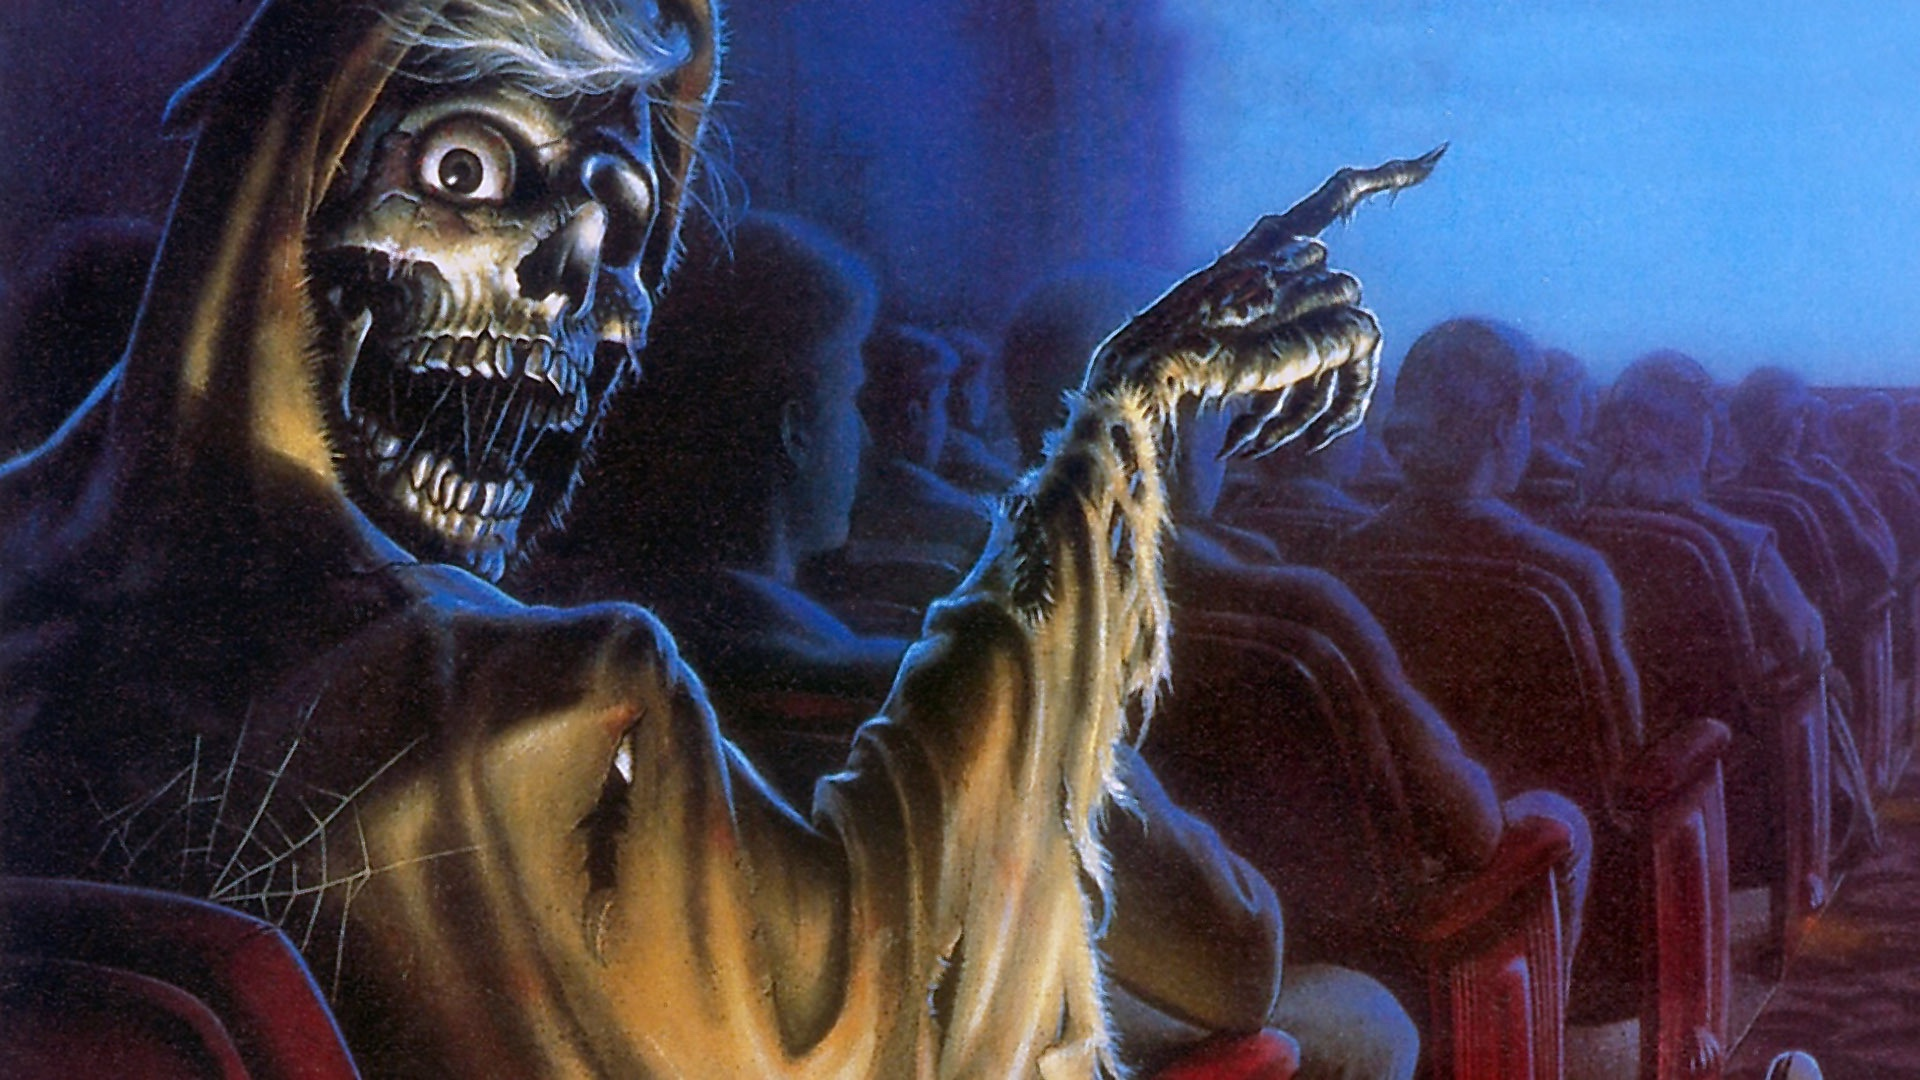 new-creepshow-horror-series-casts-adrienne-barbeau-tobin-bell-and-giancarlo-esposito-in-grey-matter-episode-social.jpg